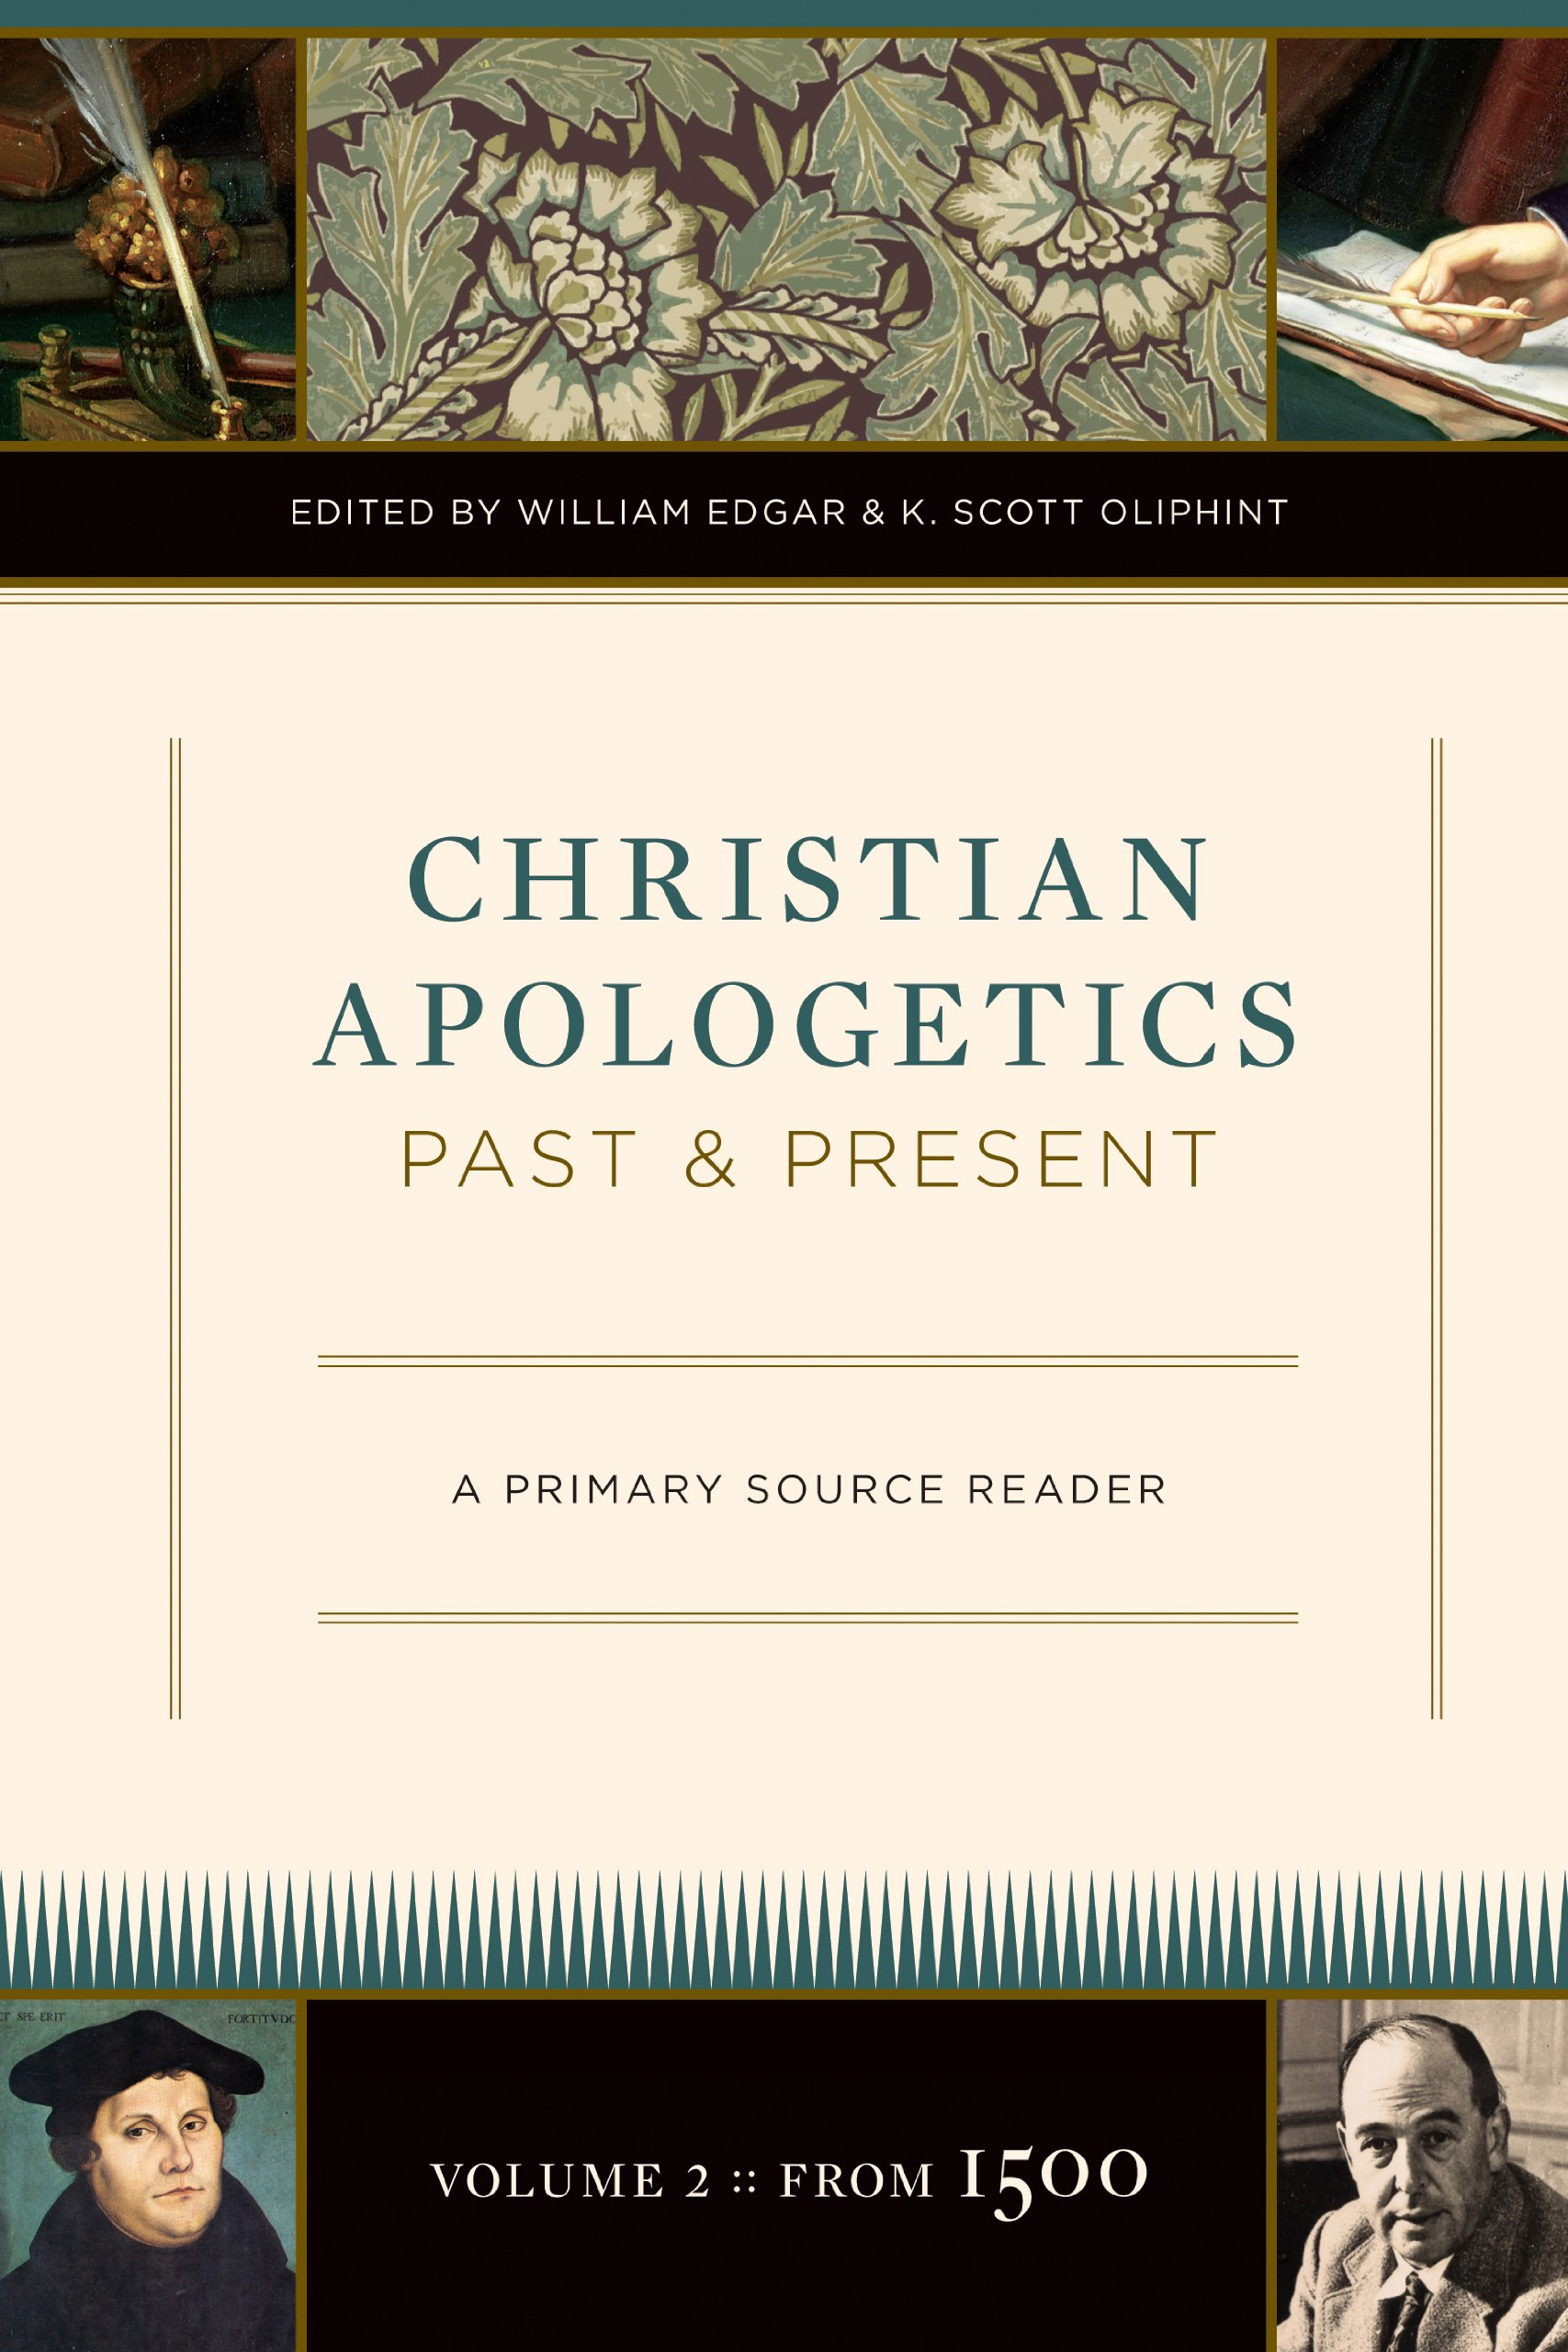 Christian Apologetics Past and Present (Volume 2, From 1500): A Primary Source Reader ebook